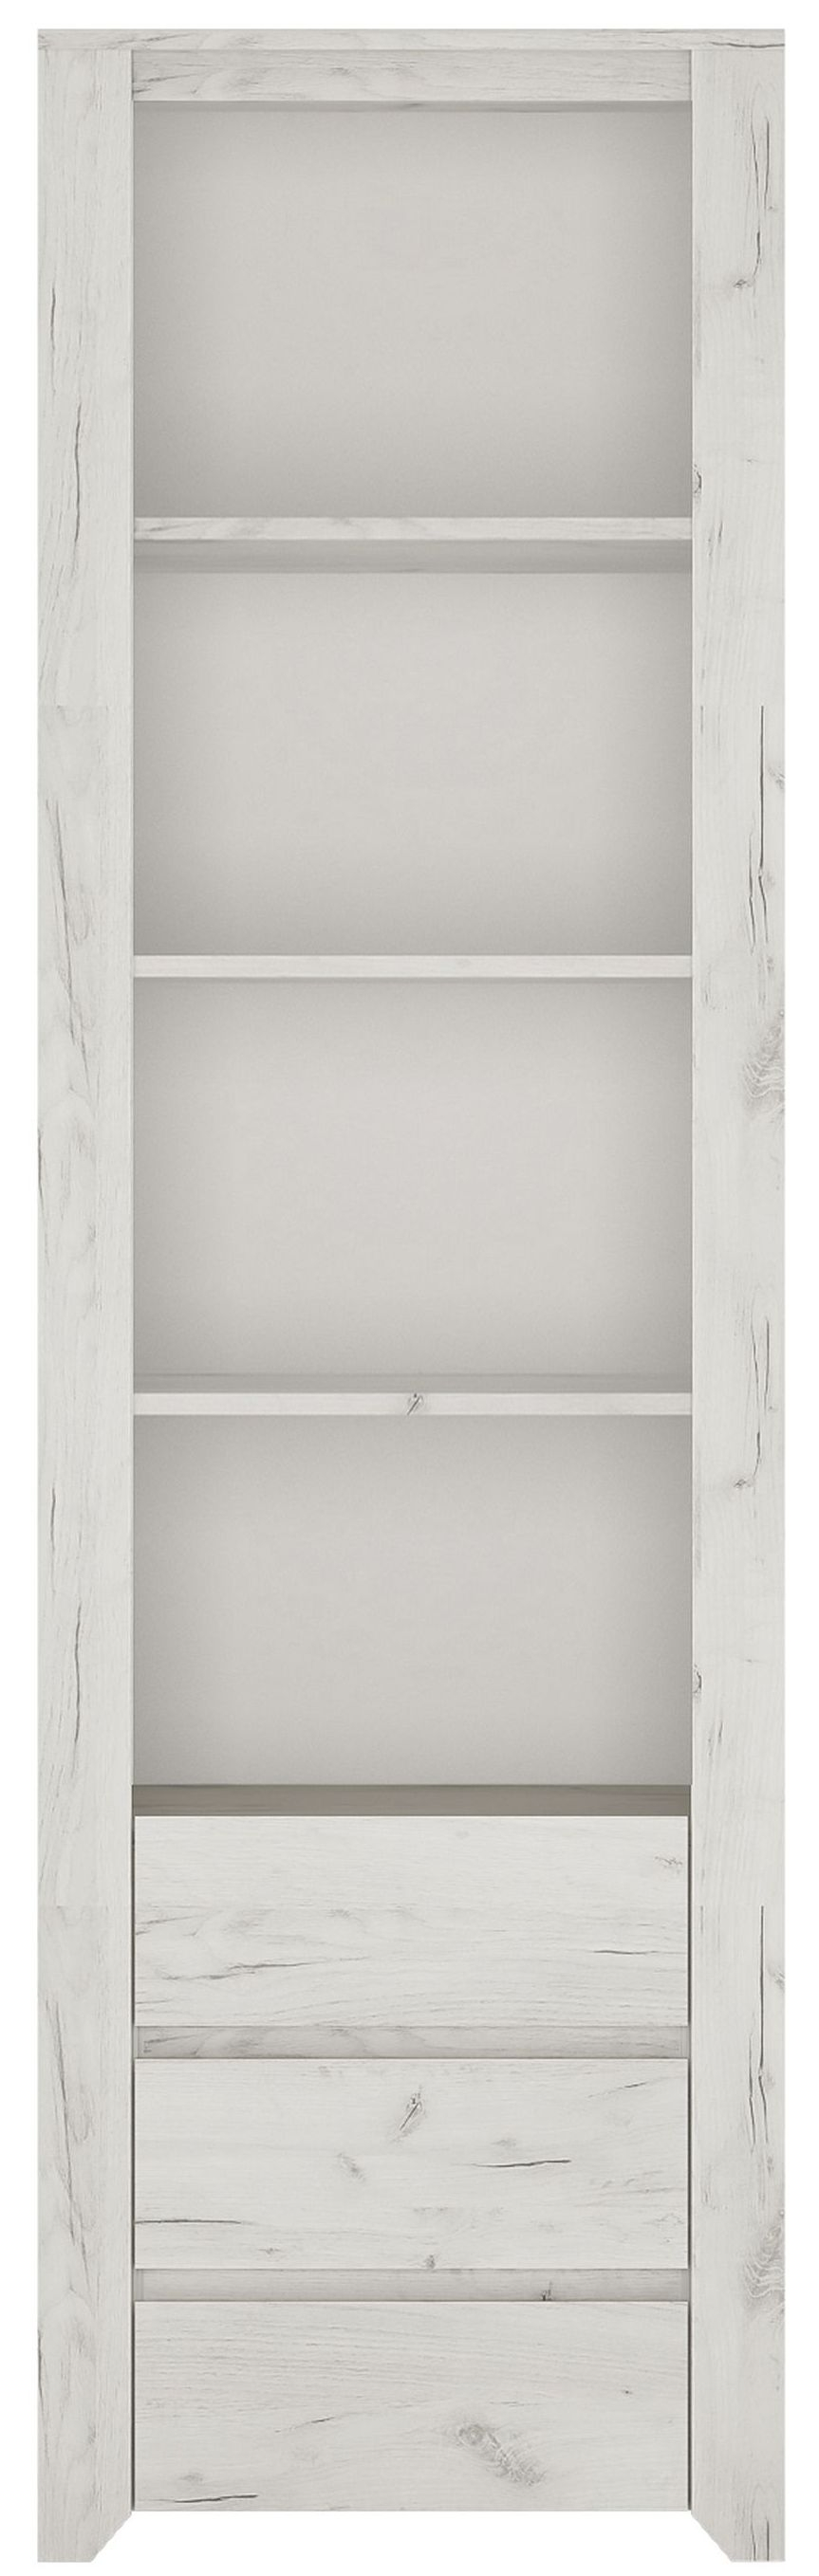 Angel Tall Bookcase - White Crafted Oak Melamine